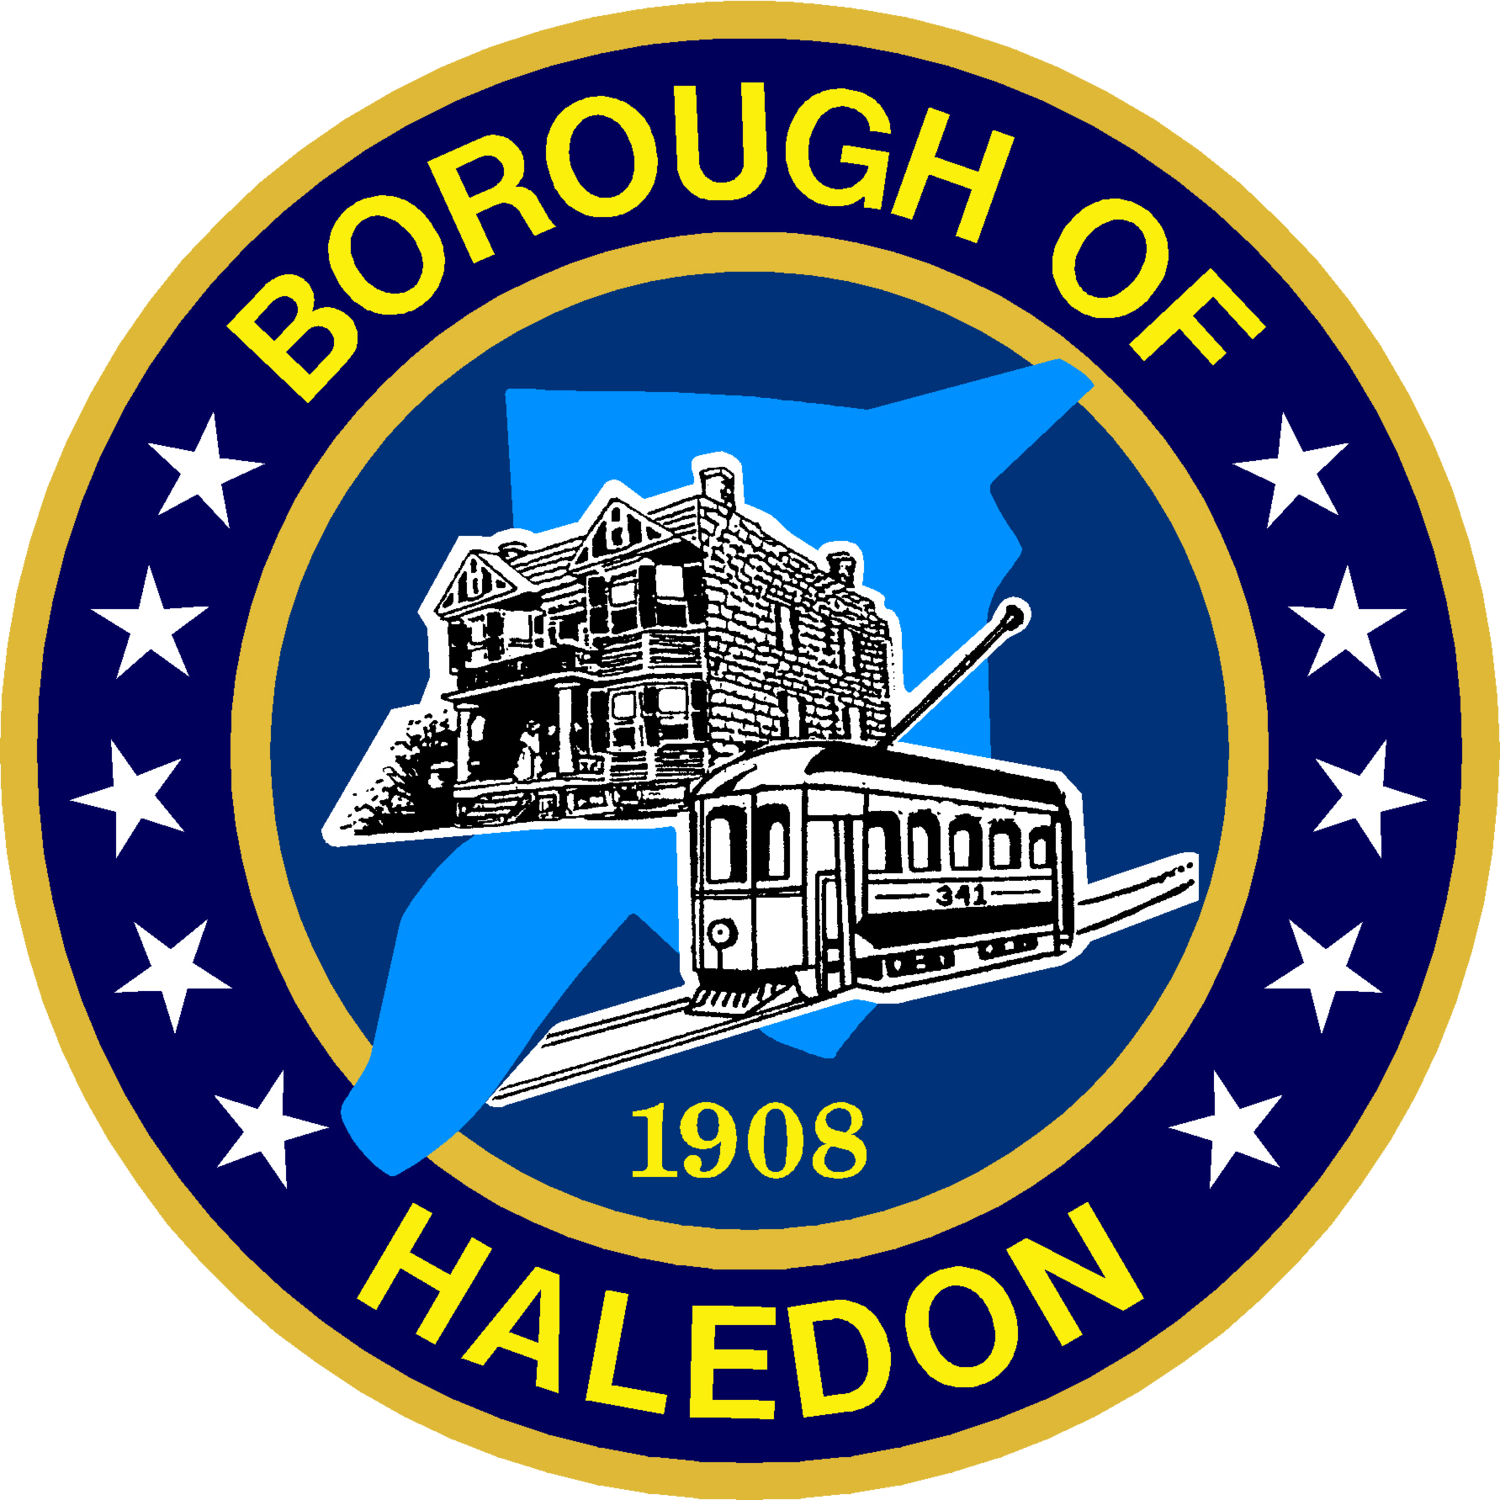 Borough of Haledon